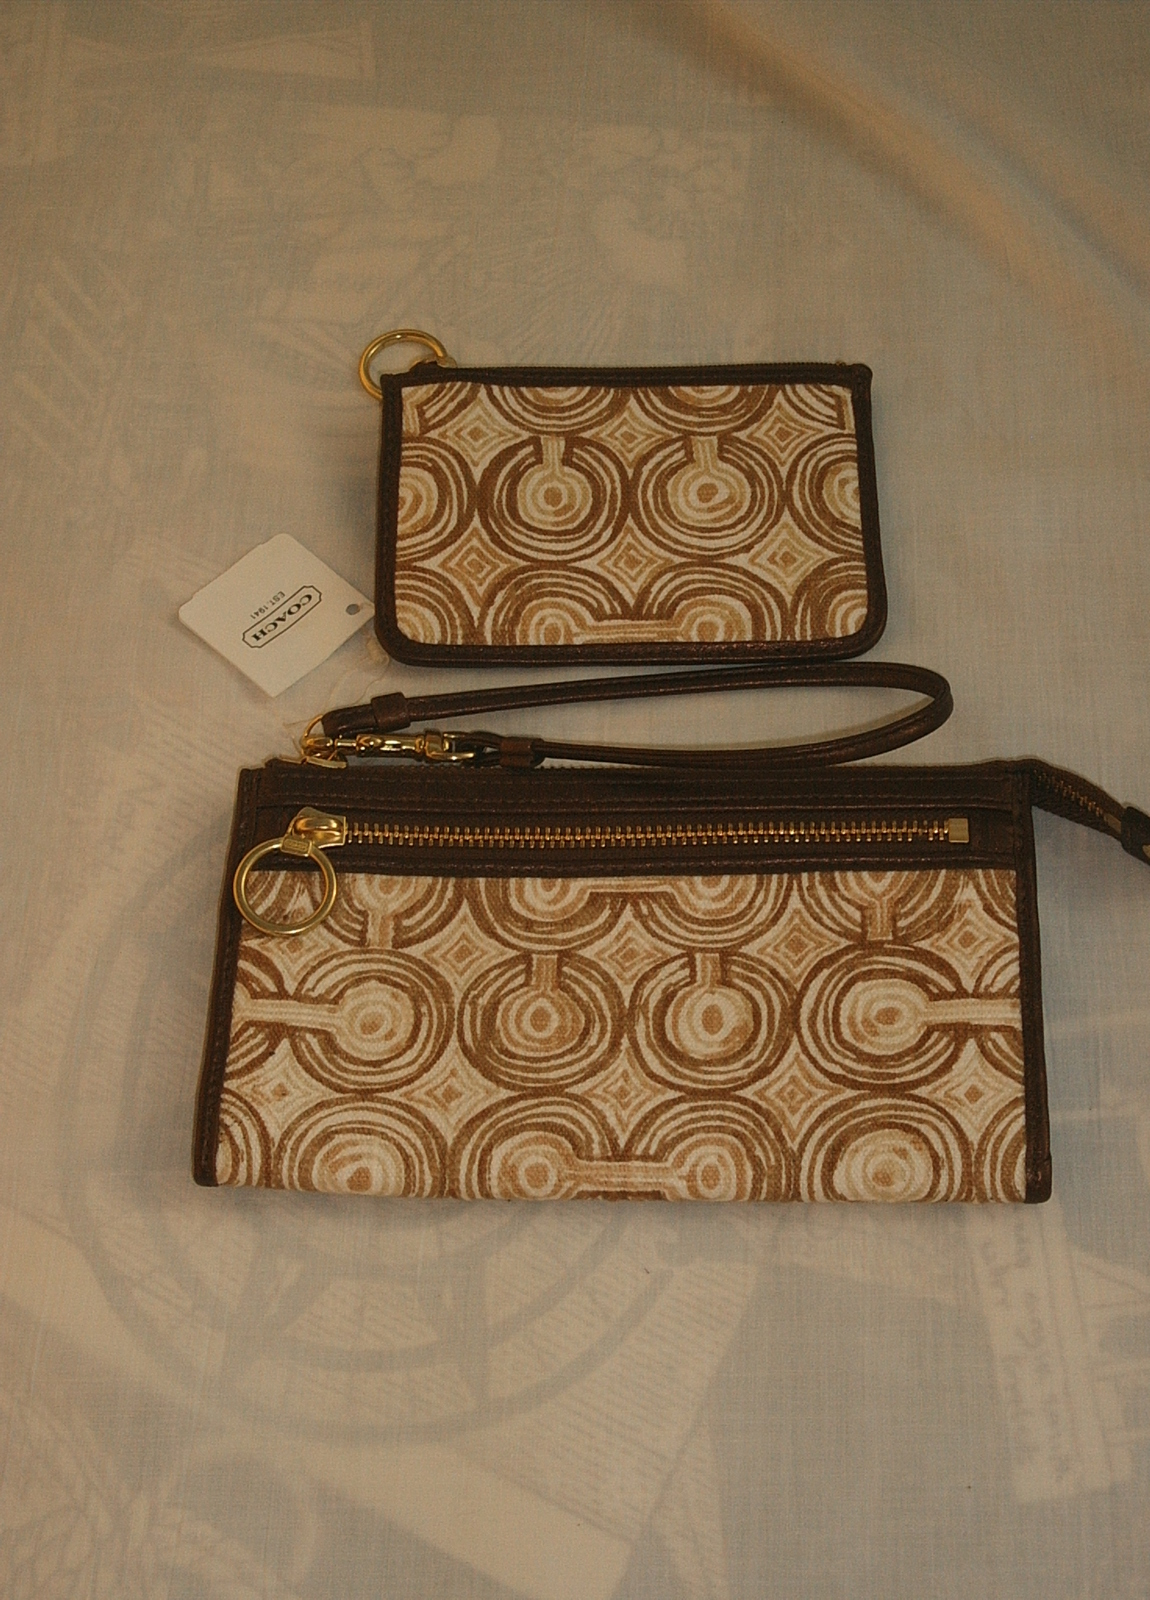 NWT COACH BROWN SWIRLTOTE 17044/WRITSLET F45531/COIN PURSE image 3